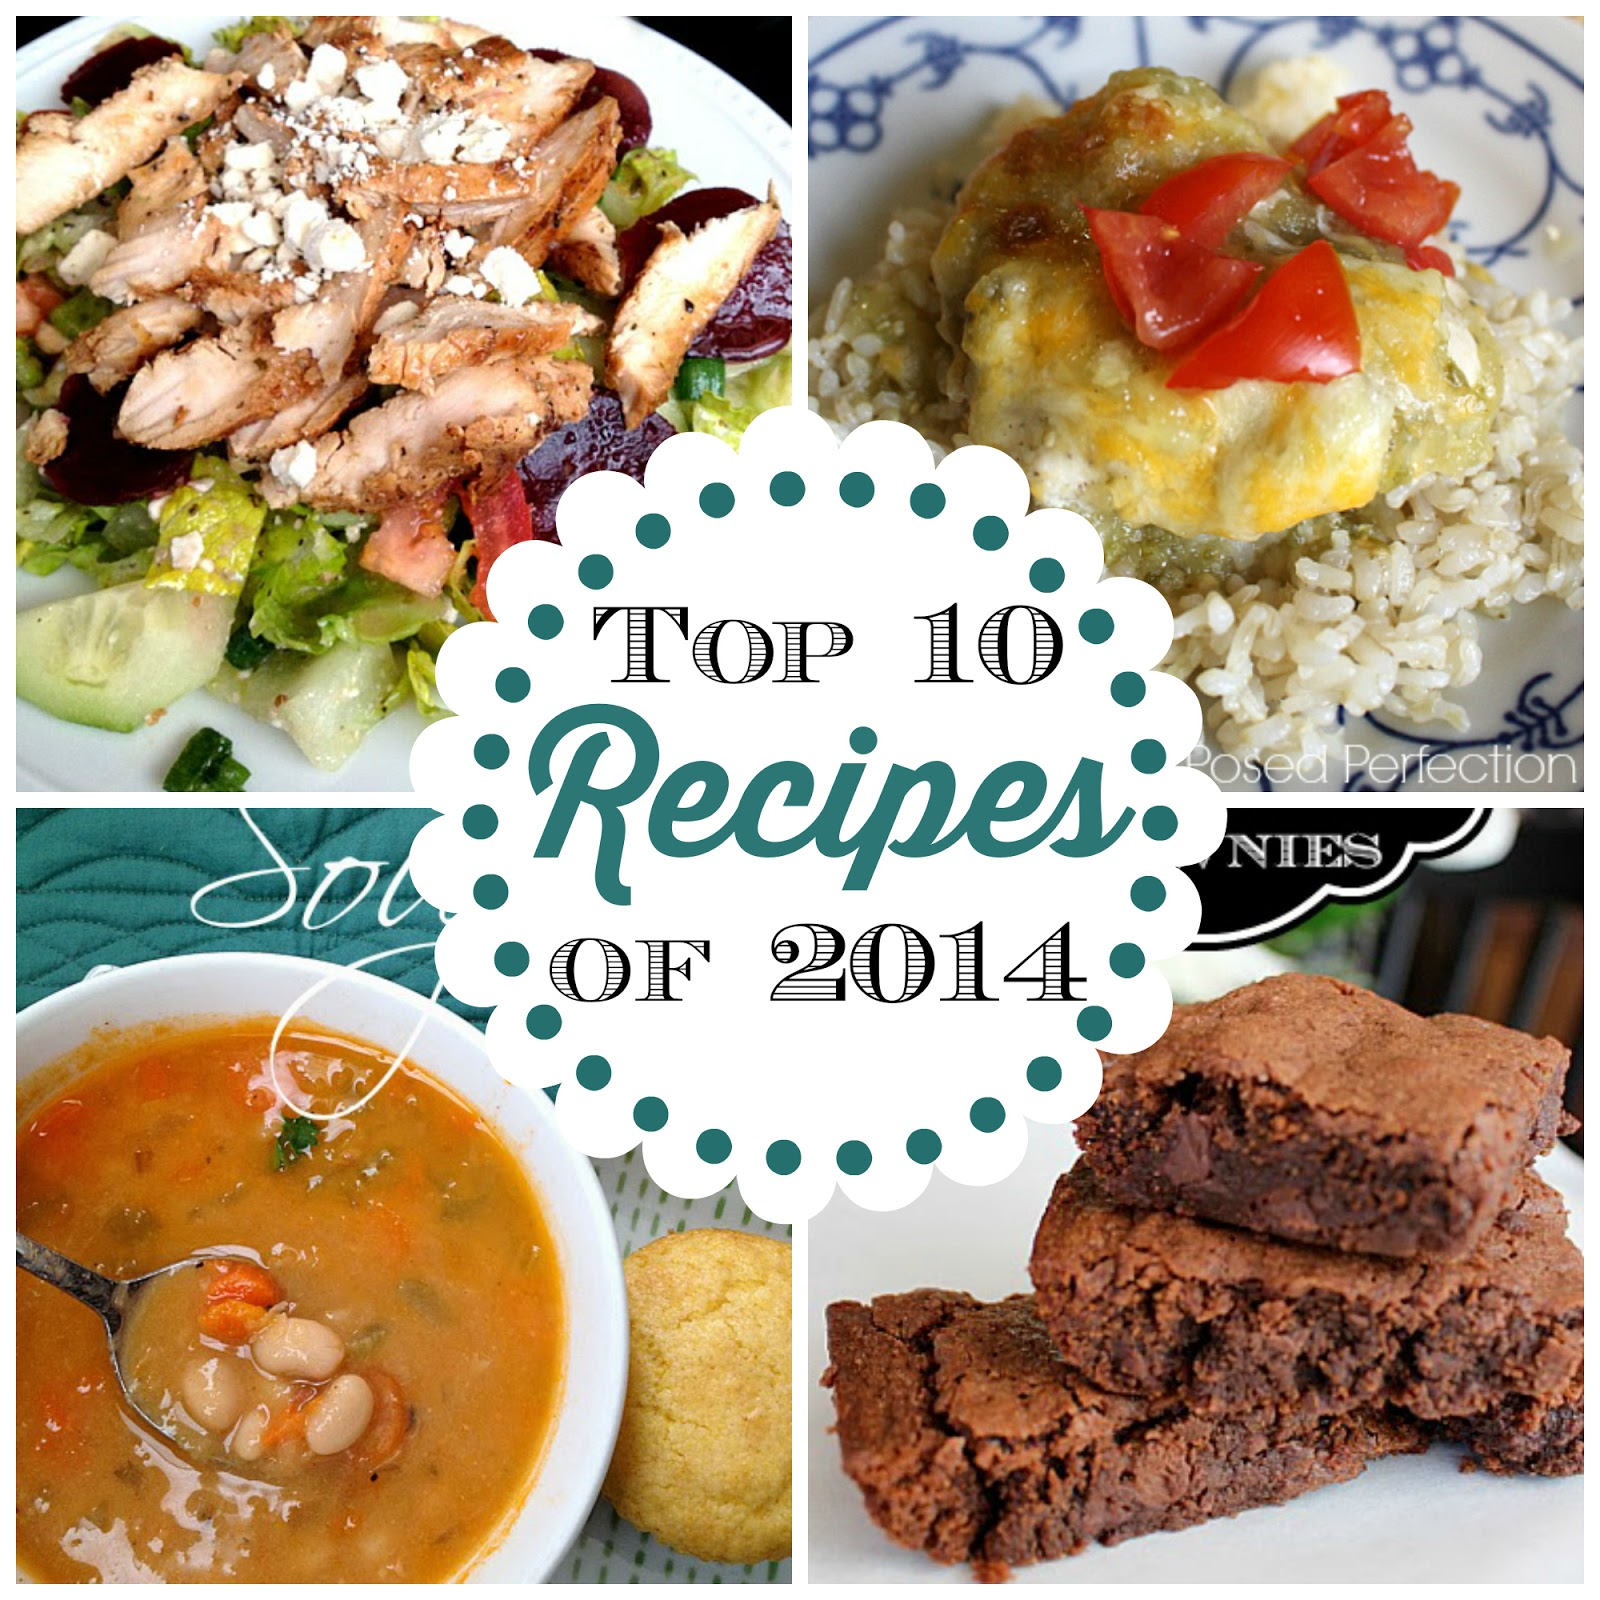 Posed Perfection's Top 10 Recipes of 2014